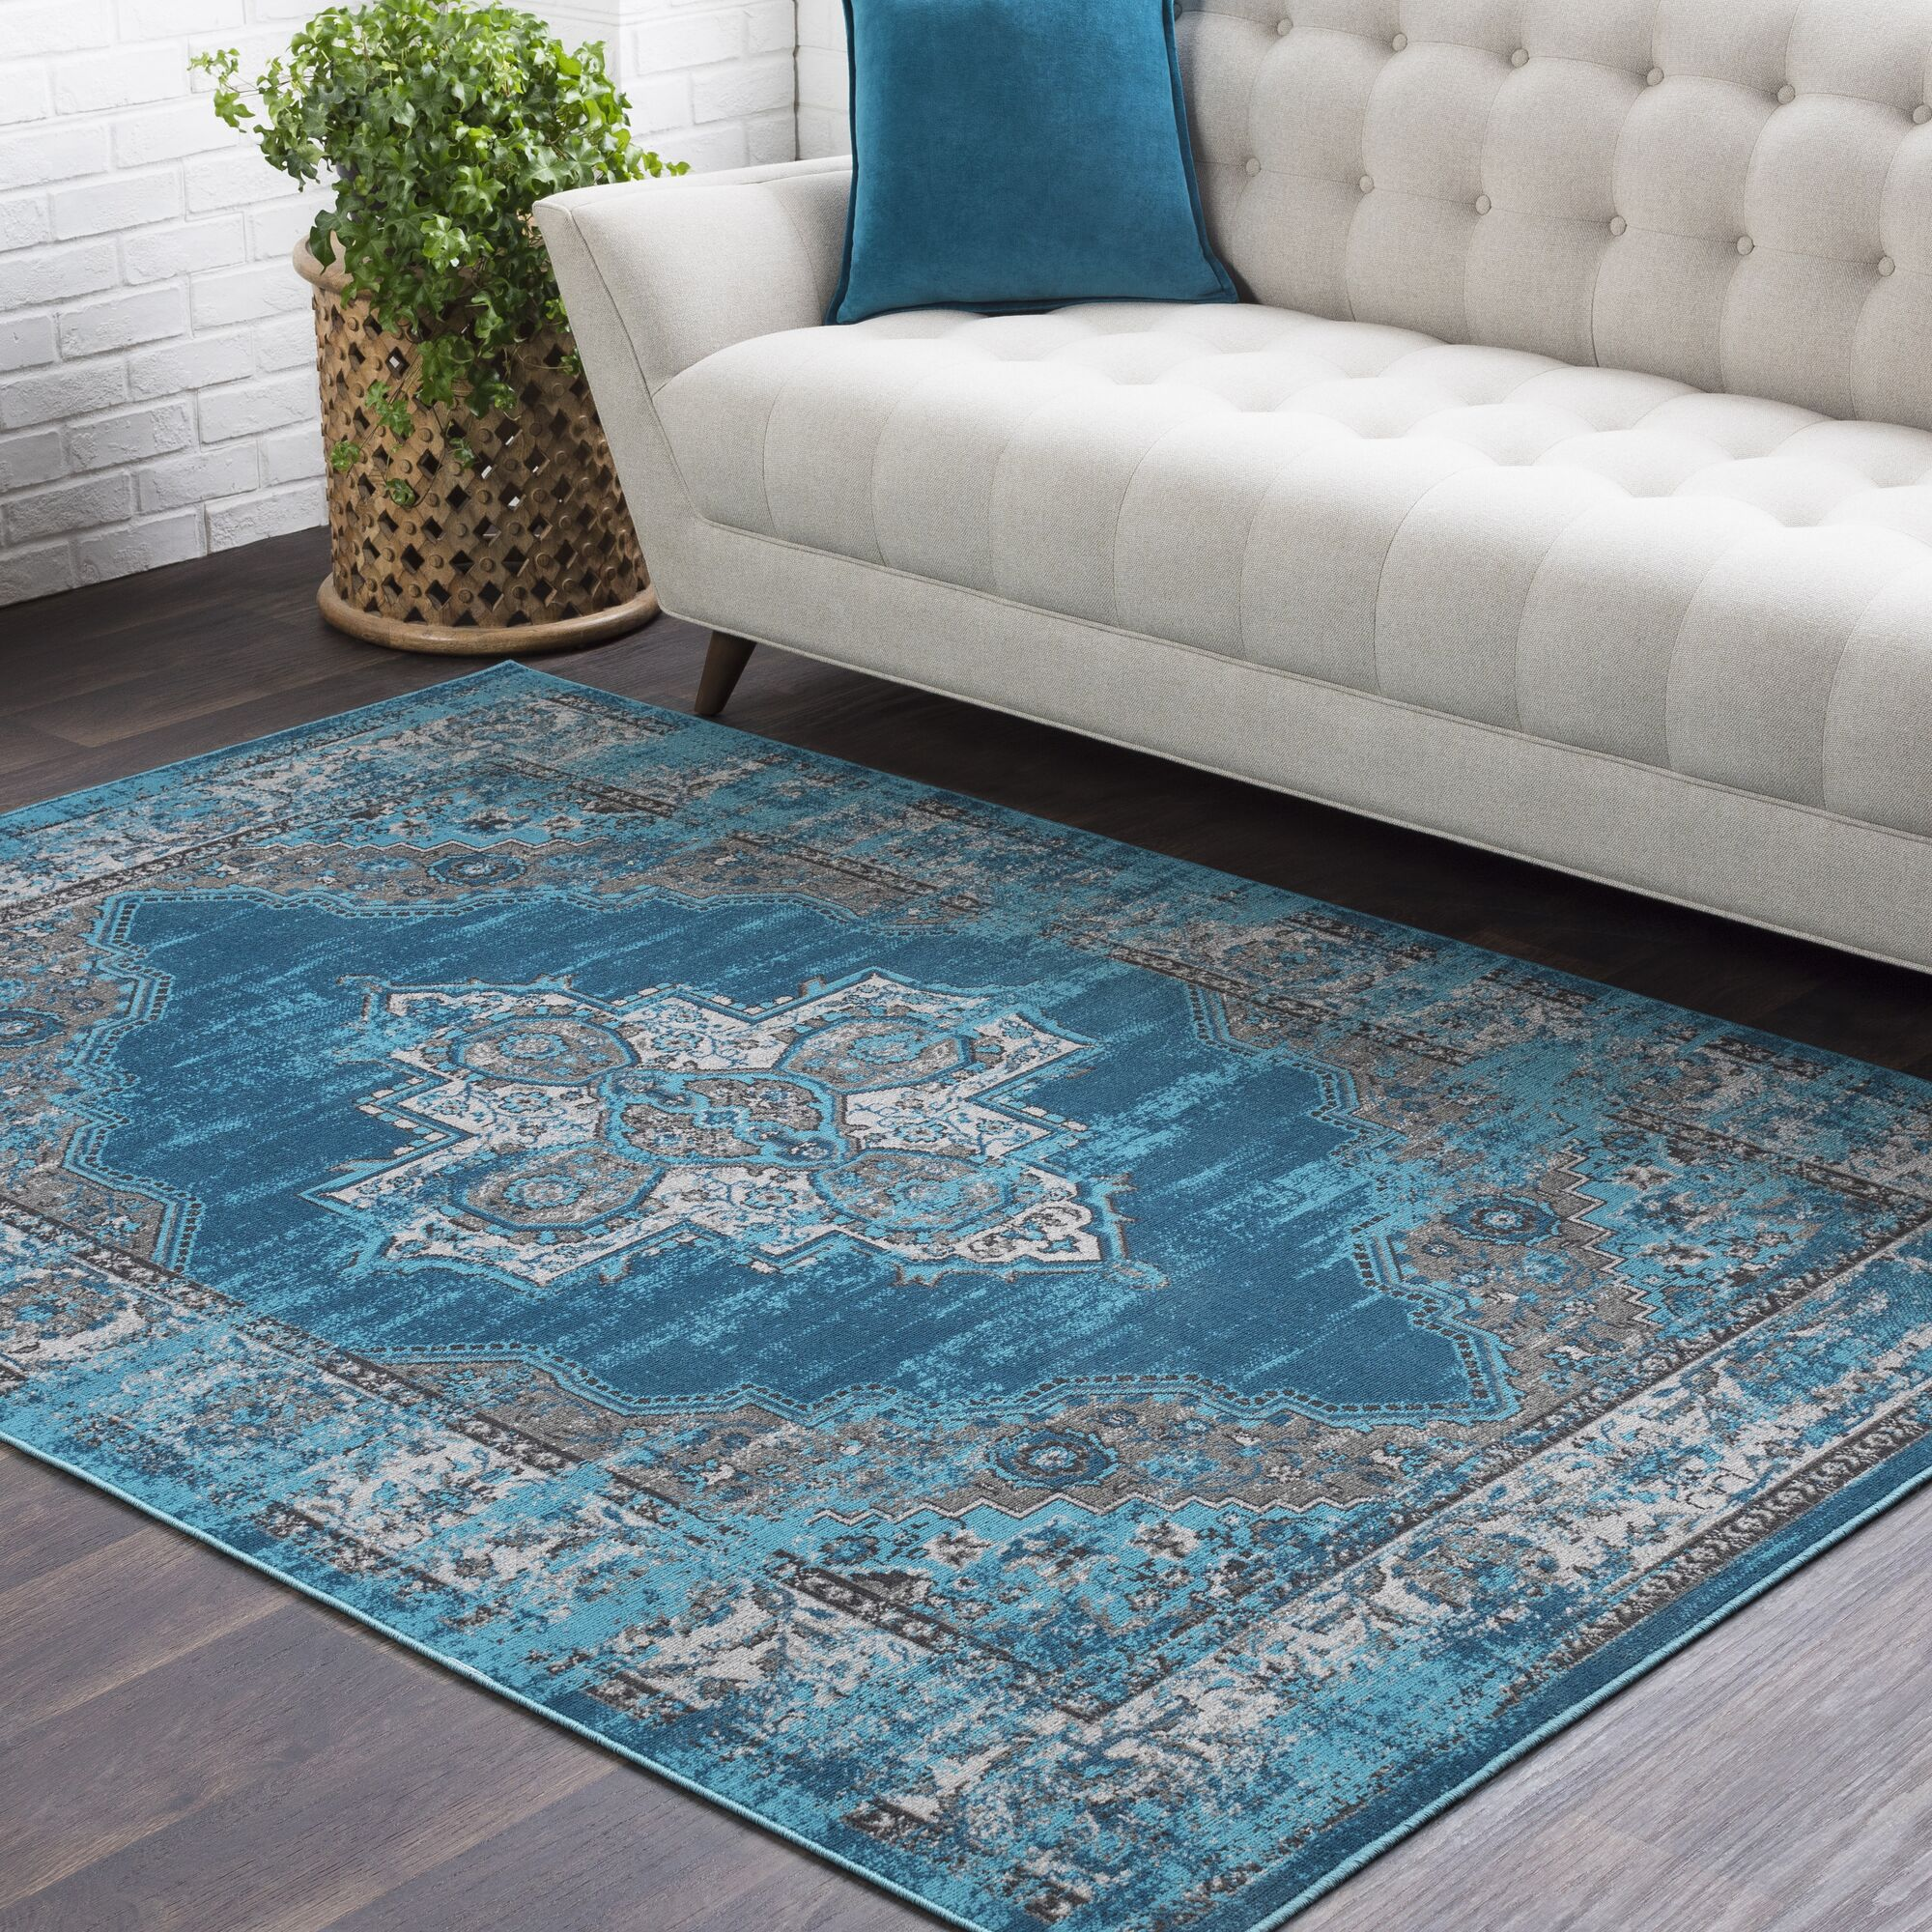 Sharpes Teal/Medium Gray Area Rug Rug Size: Rectangle 2' x 3'